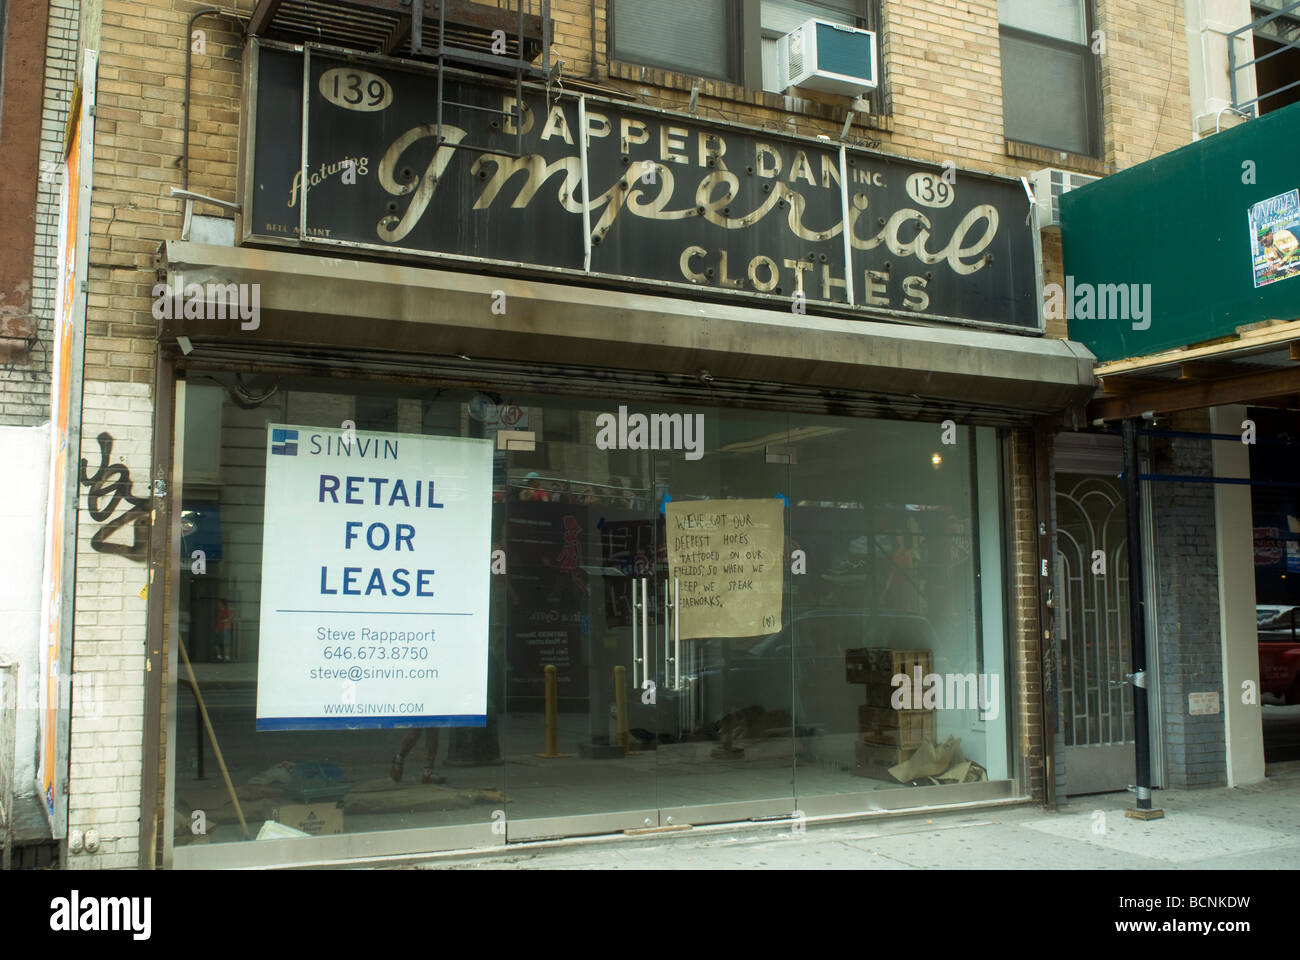 Vacant retail space on West 14th street in the Greenwich Village neighborhood in New York - Stock Image